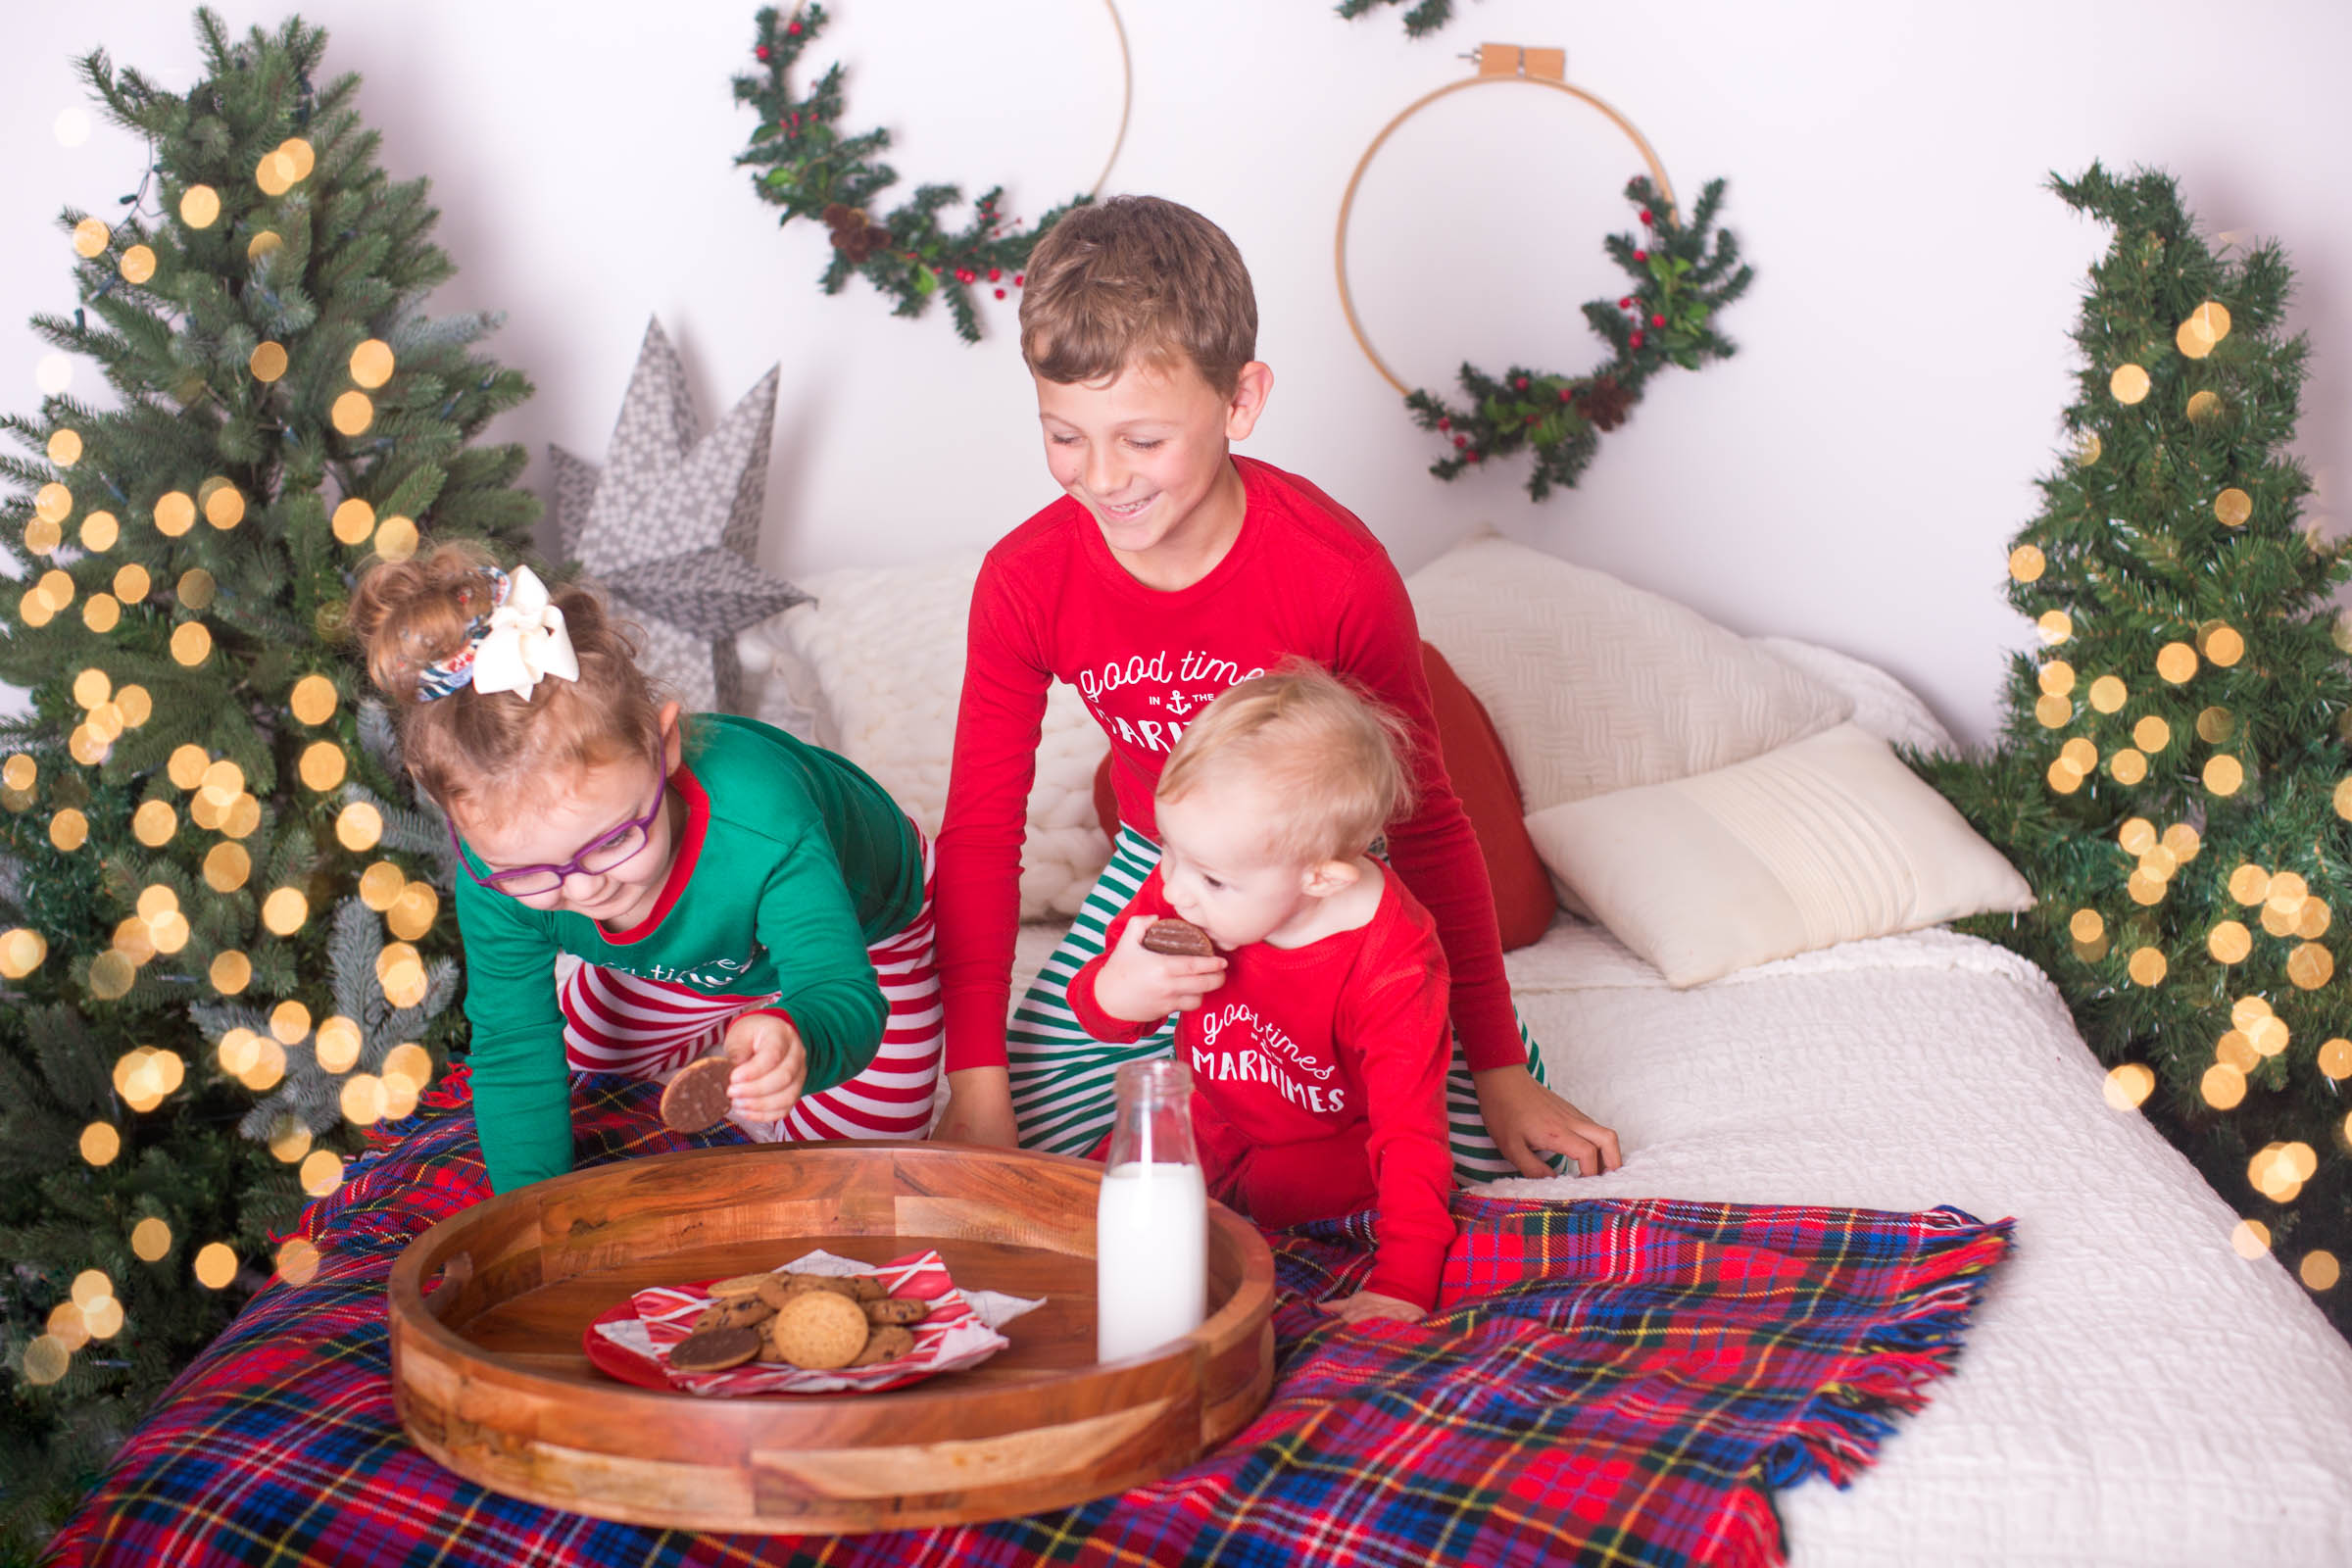 Image of 3 children choosing cookies off the tray